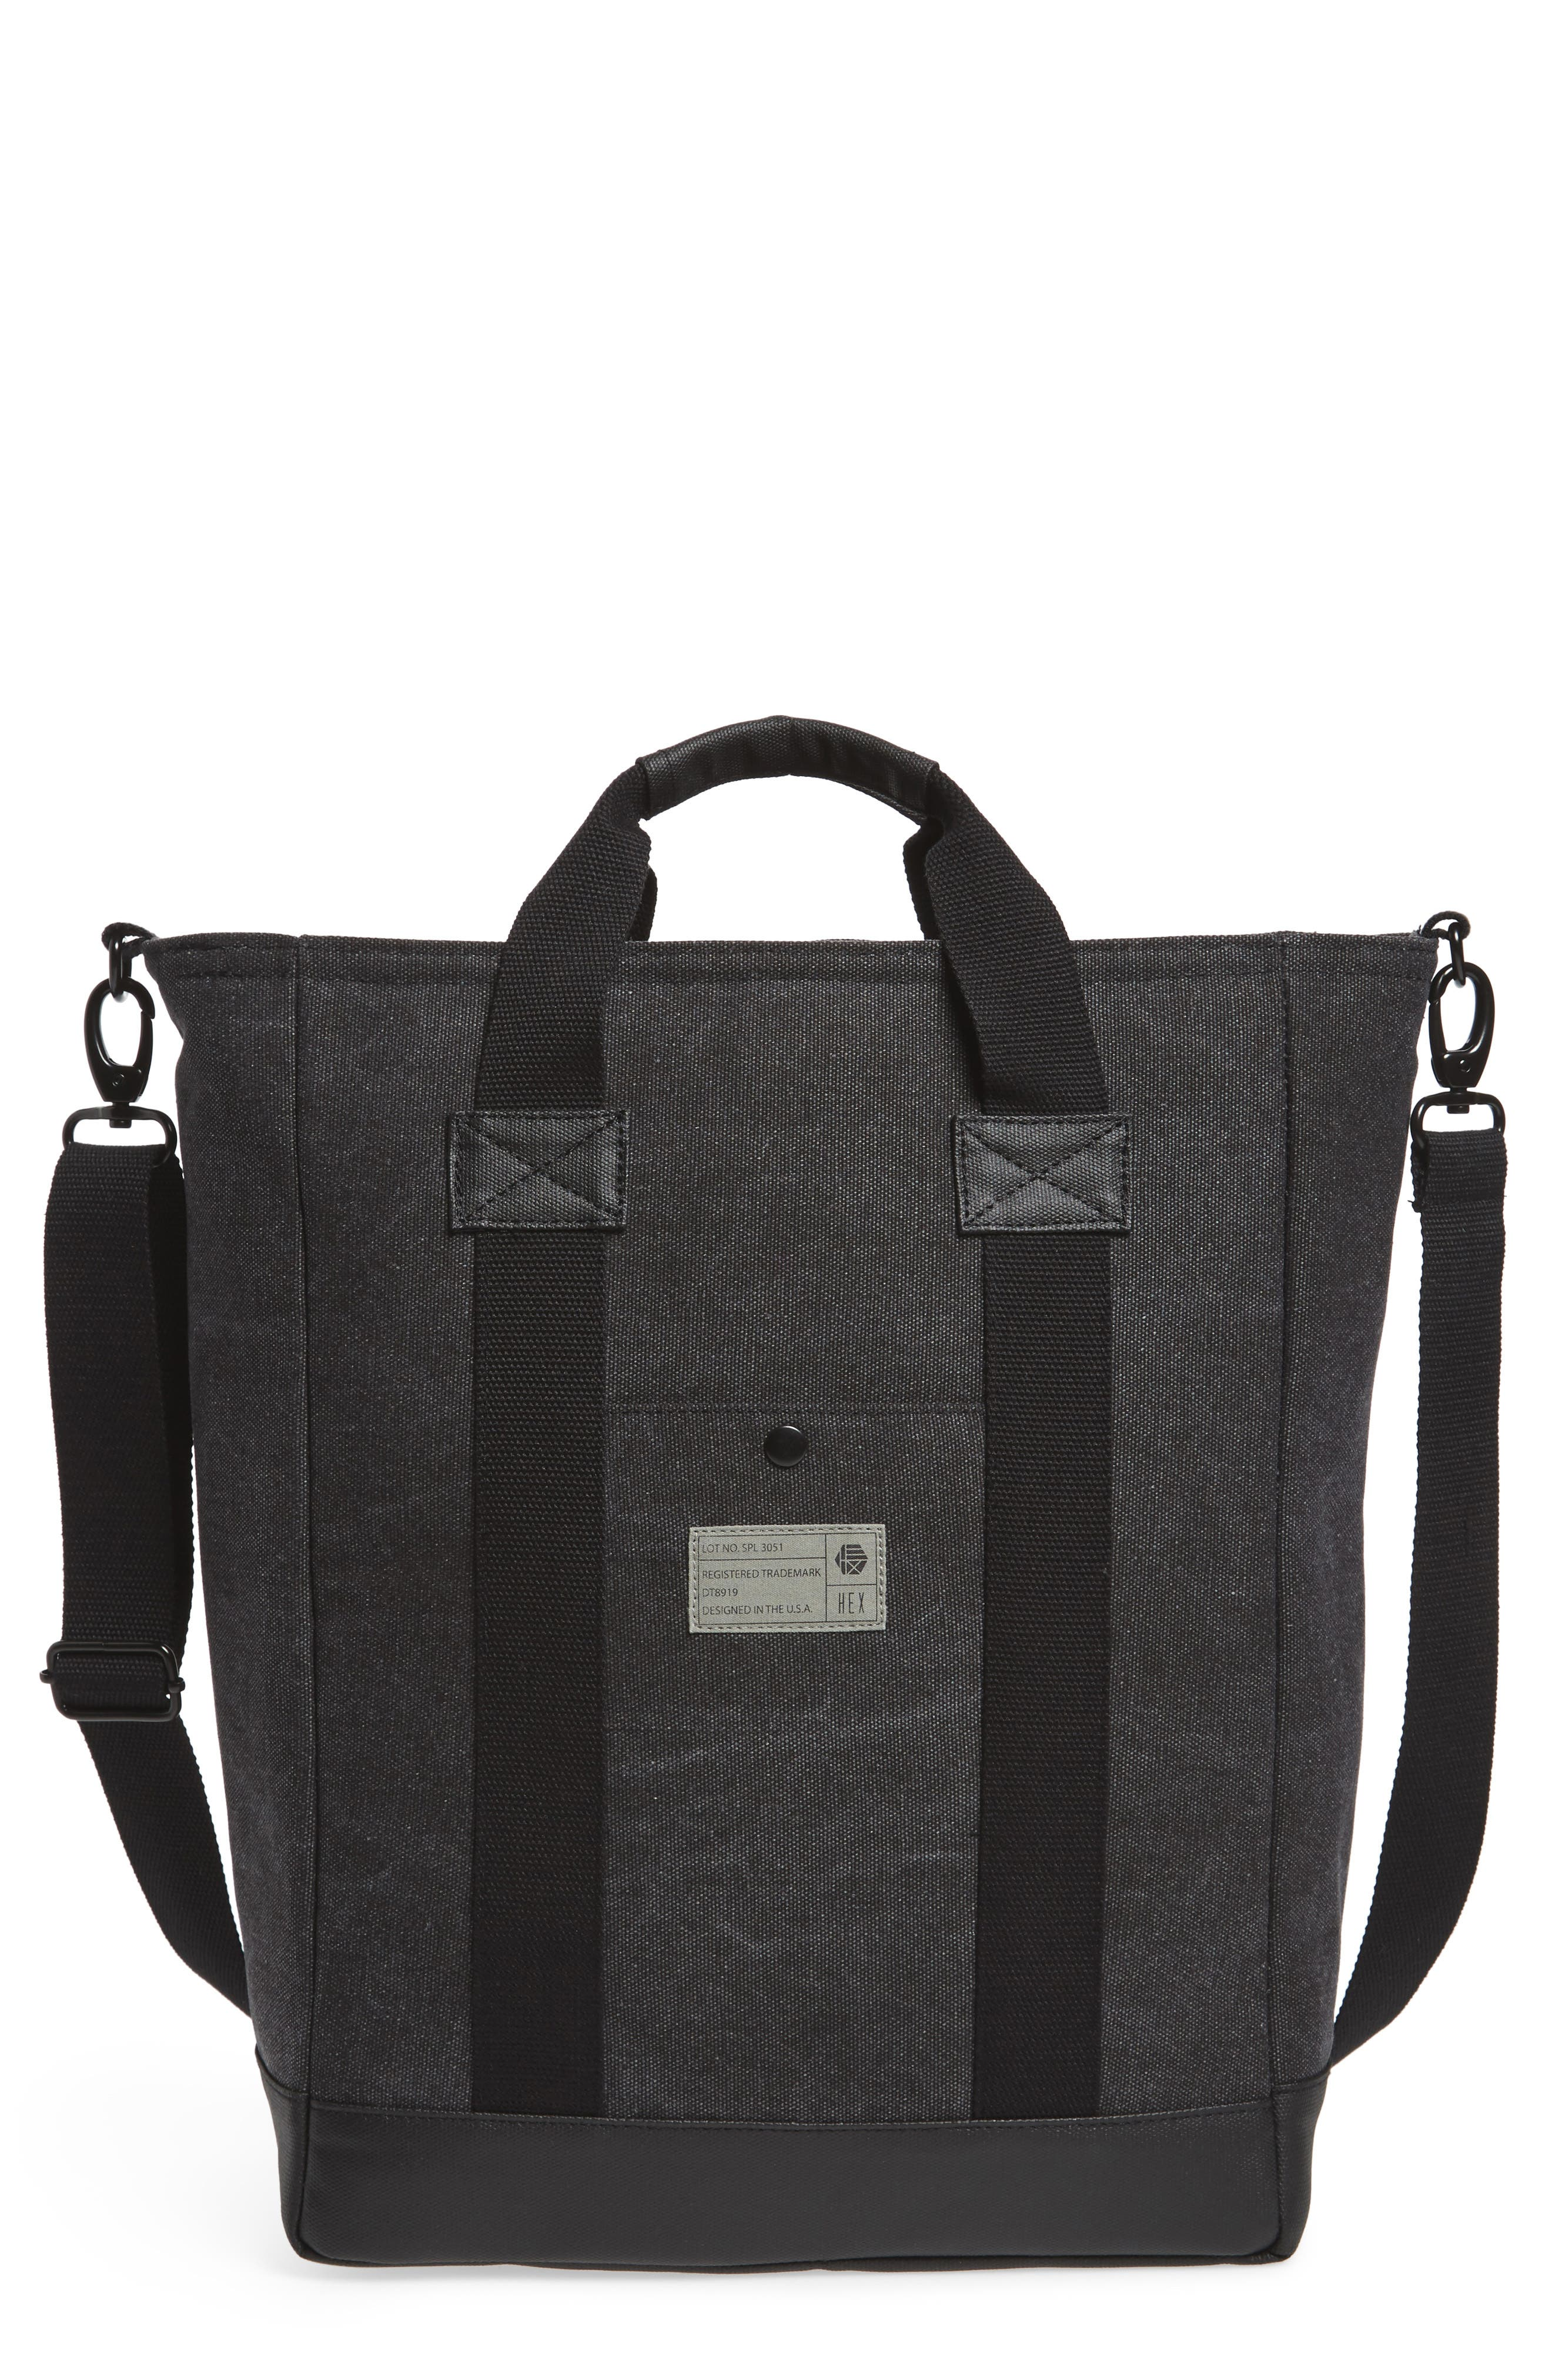 Alternate Image 1 Selected - HEX Canvas Tote Bag